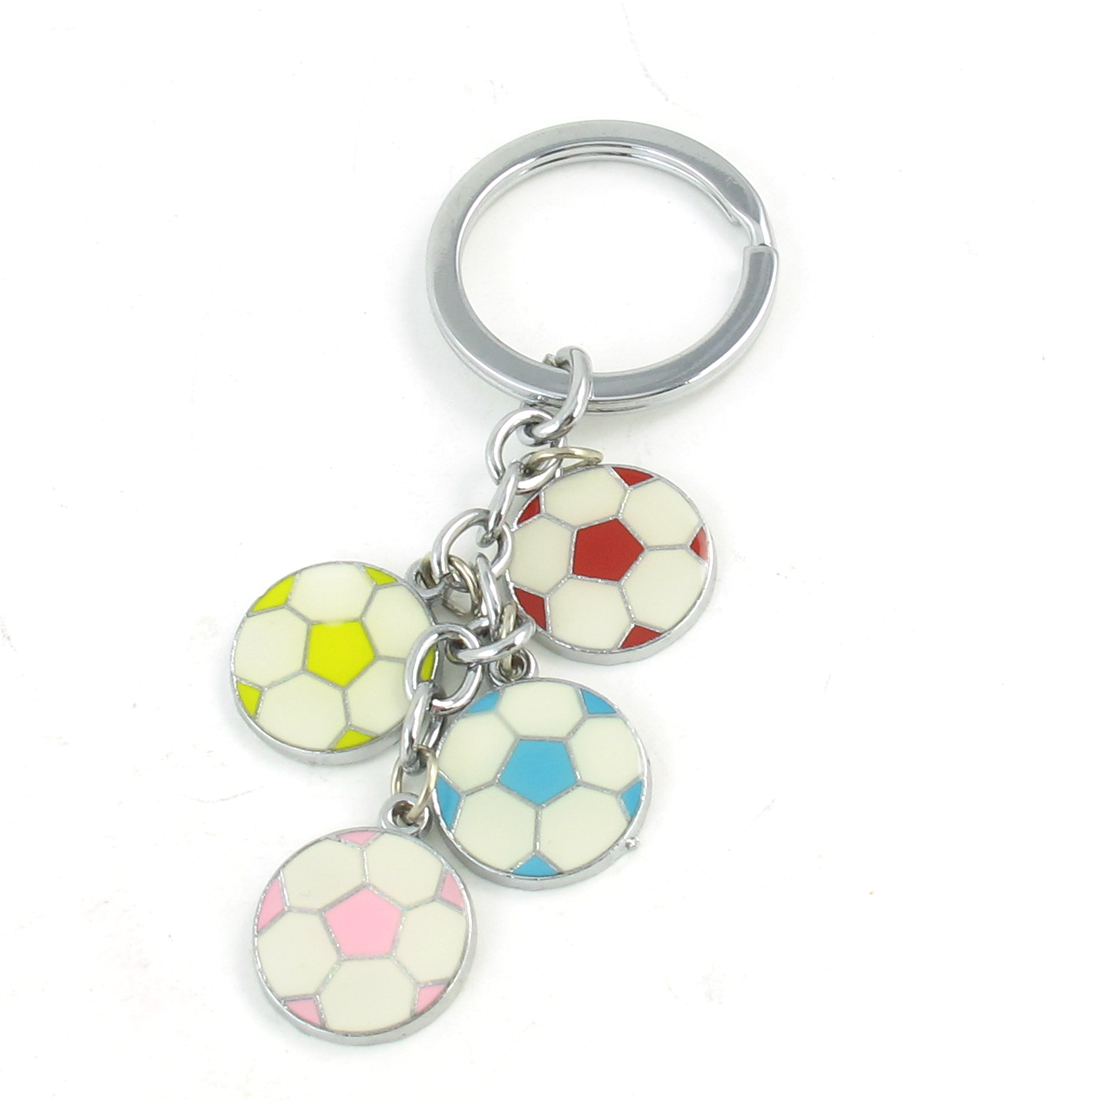 Portable Footable Design Pendant Keyring Keychain Silver Tone Red Yellow